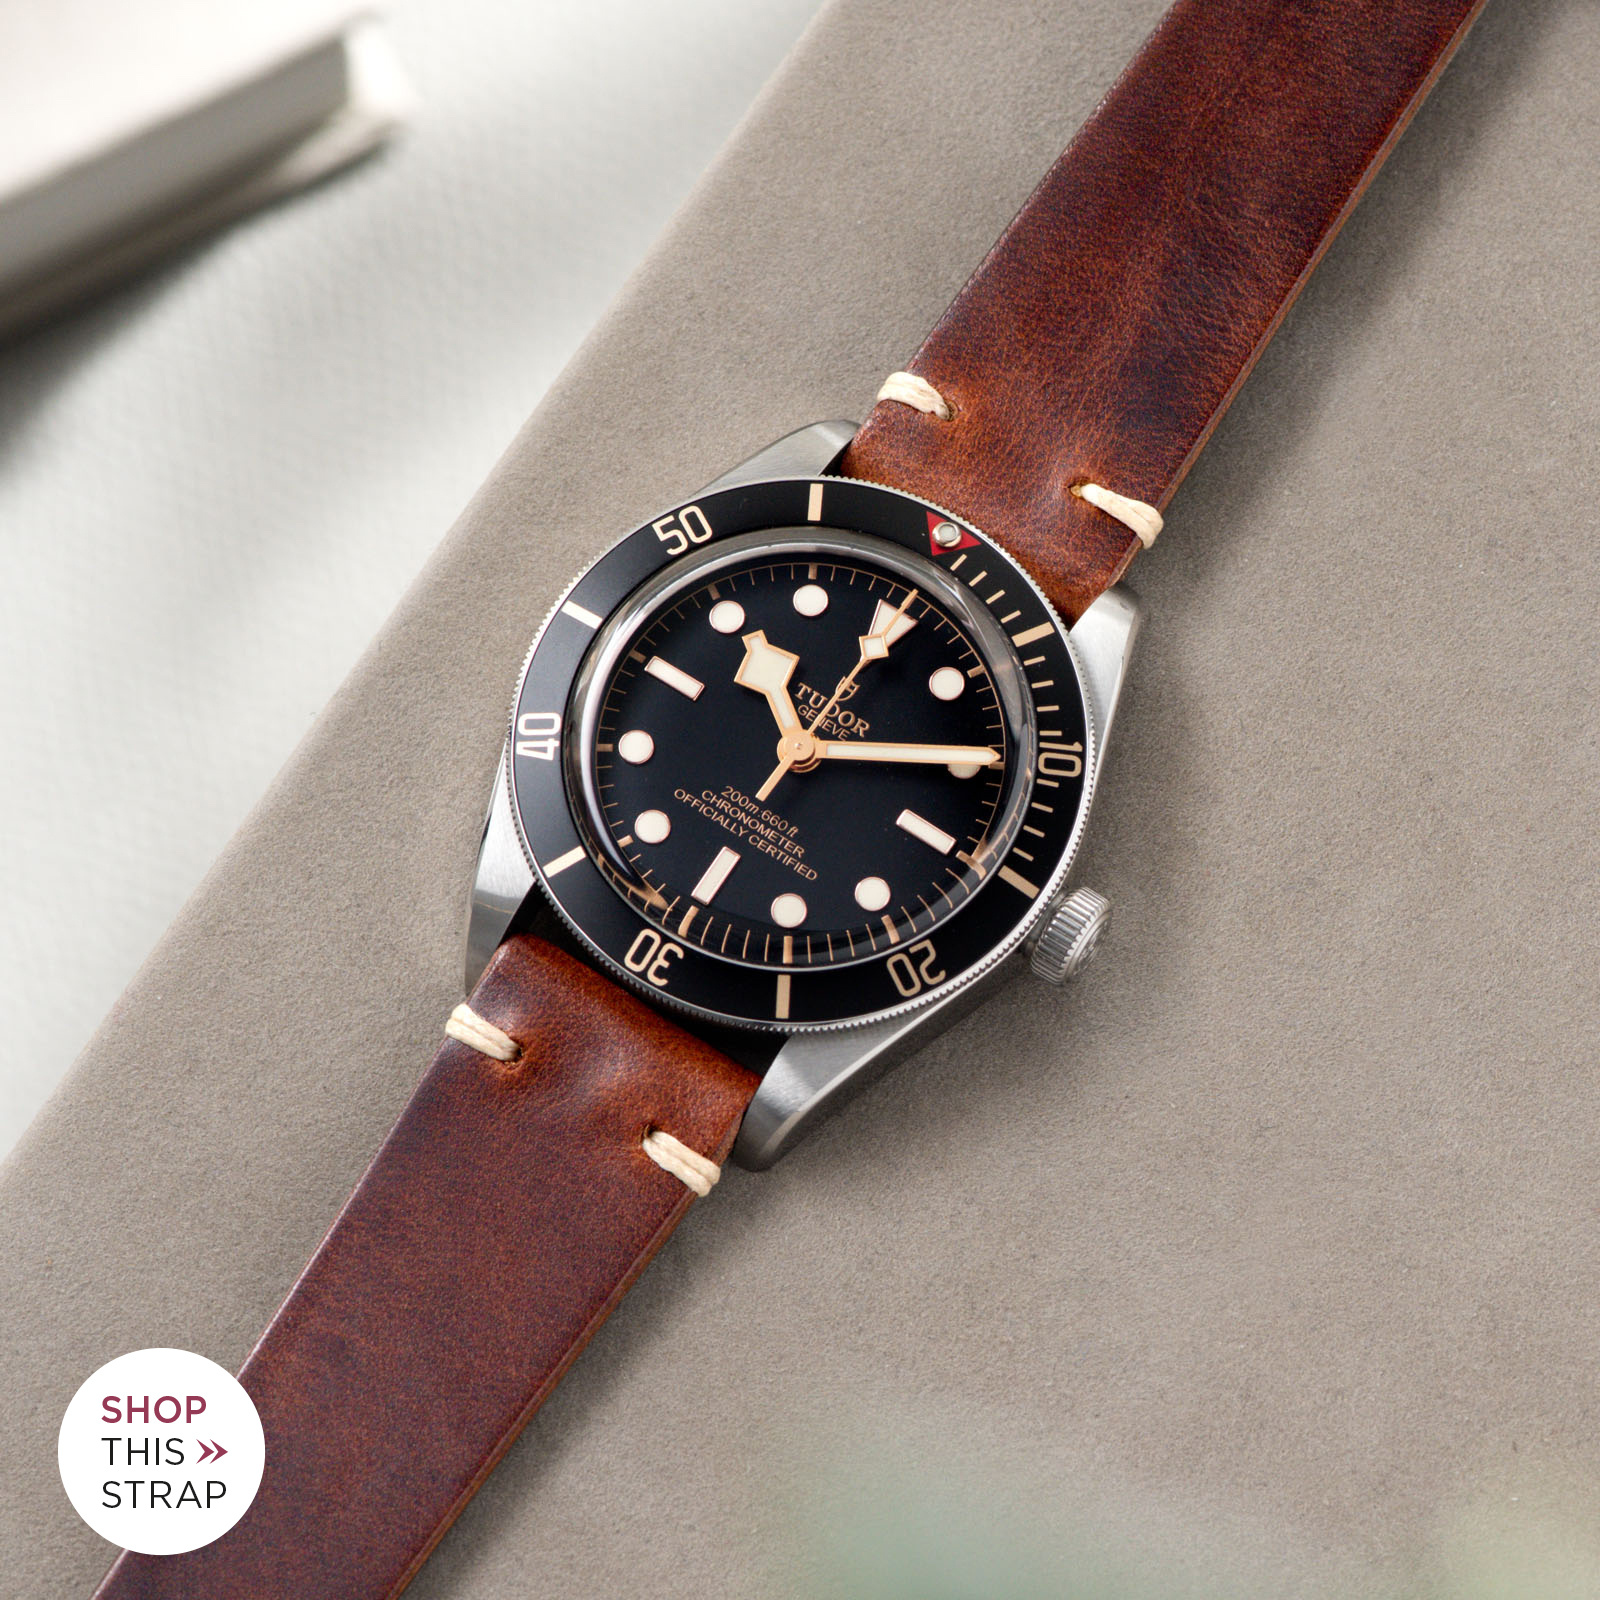 Bulang and Sons_Strap Guide_Tudor Black Bay 58_Siena Brown Leather Watch Strap